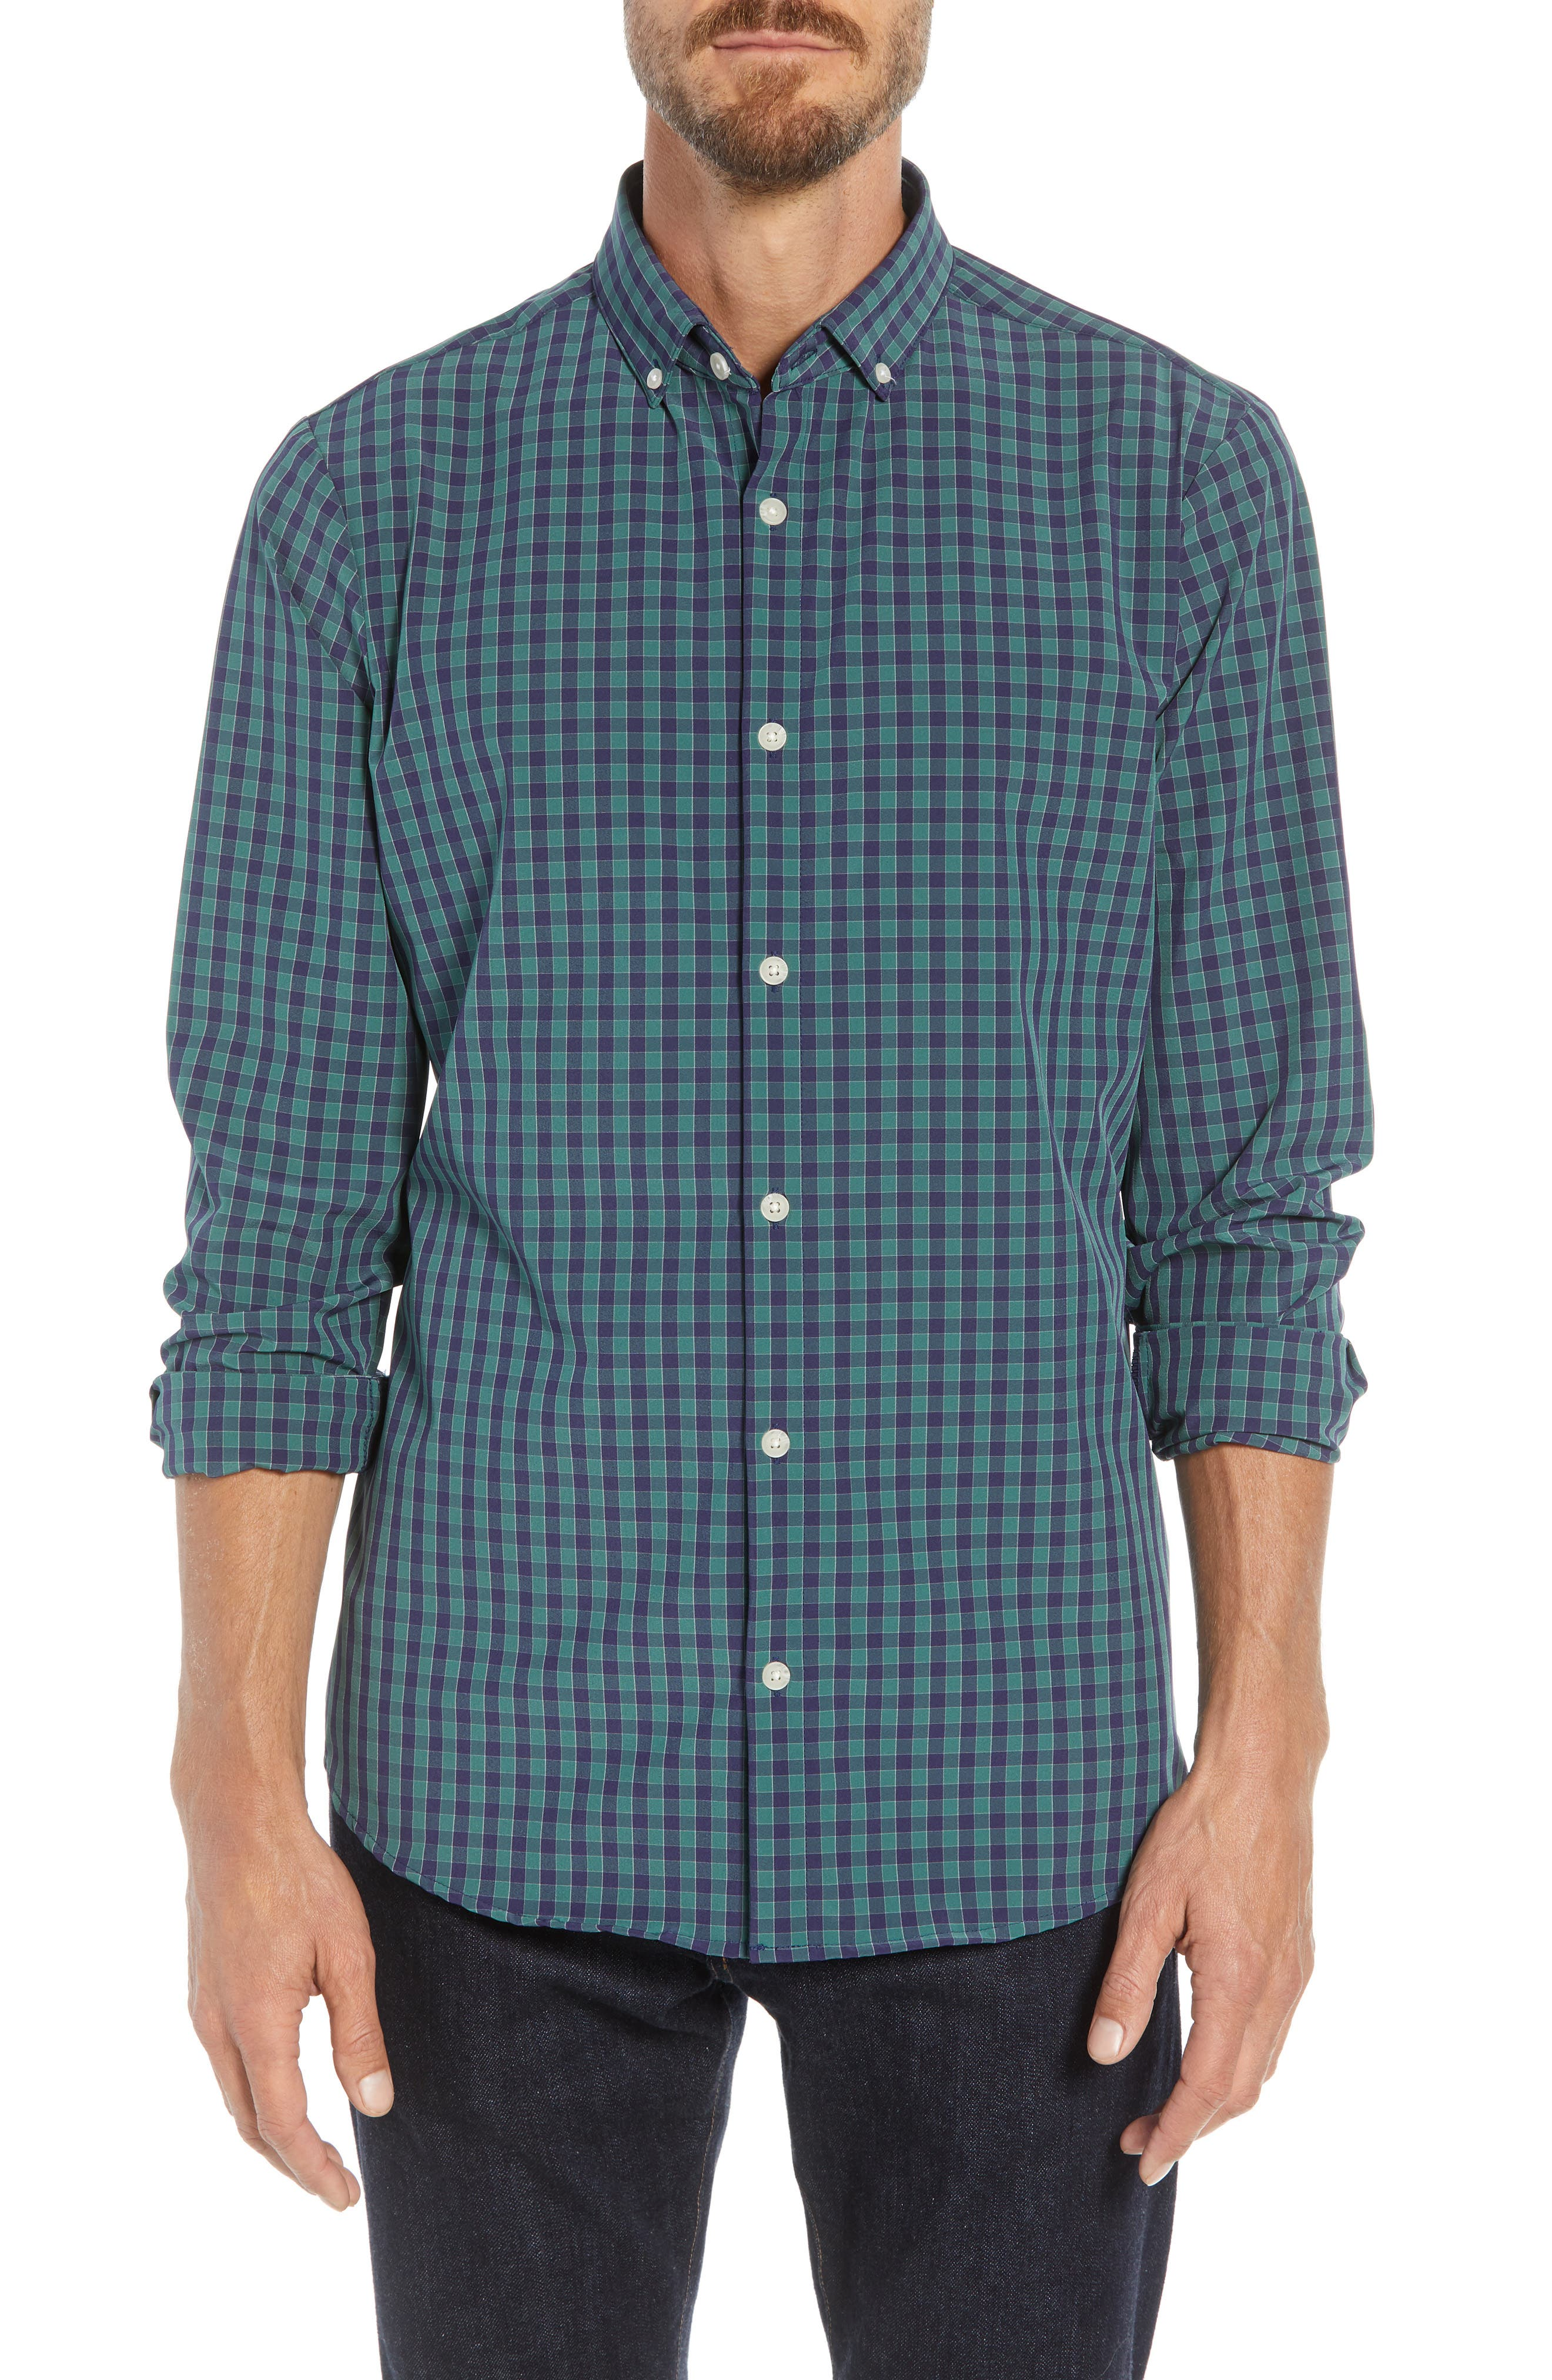 Thomson Slim Fit Sport Shirt,                             Main thumbnail 1, color,                             GREEN